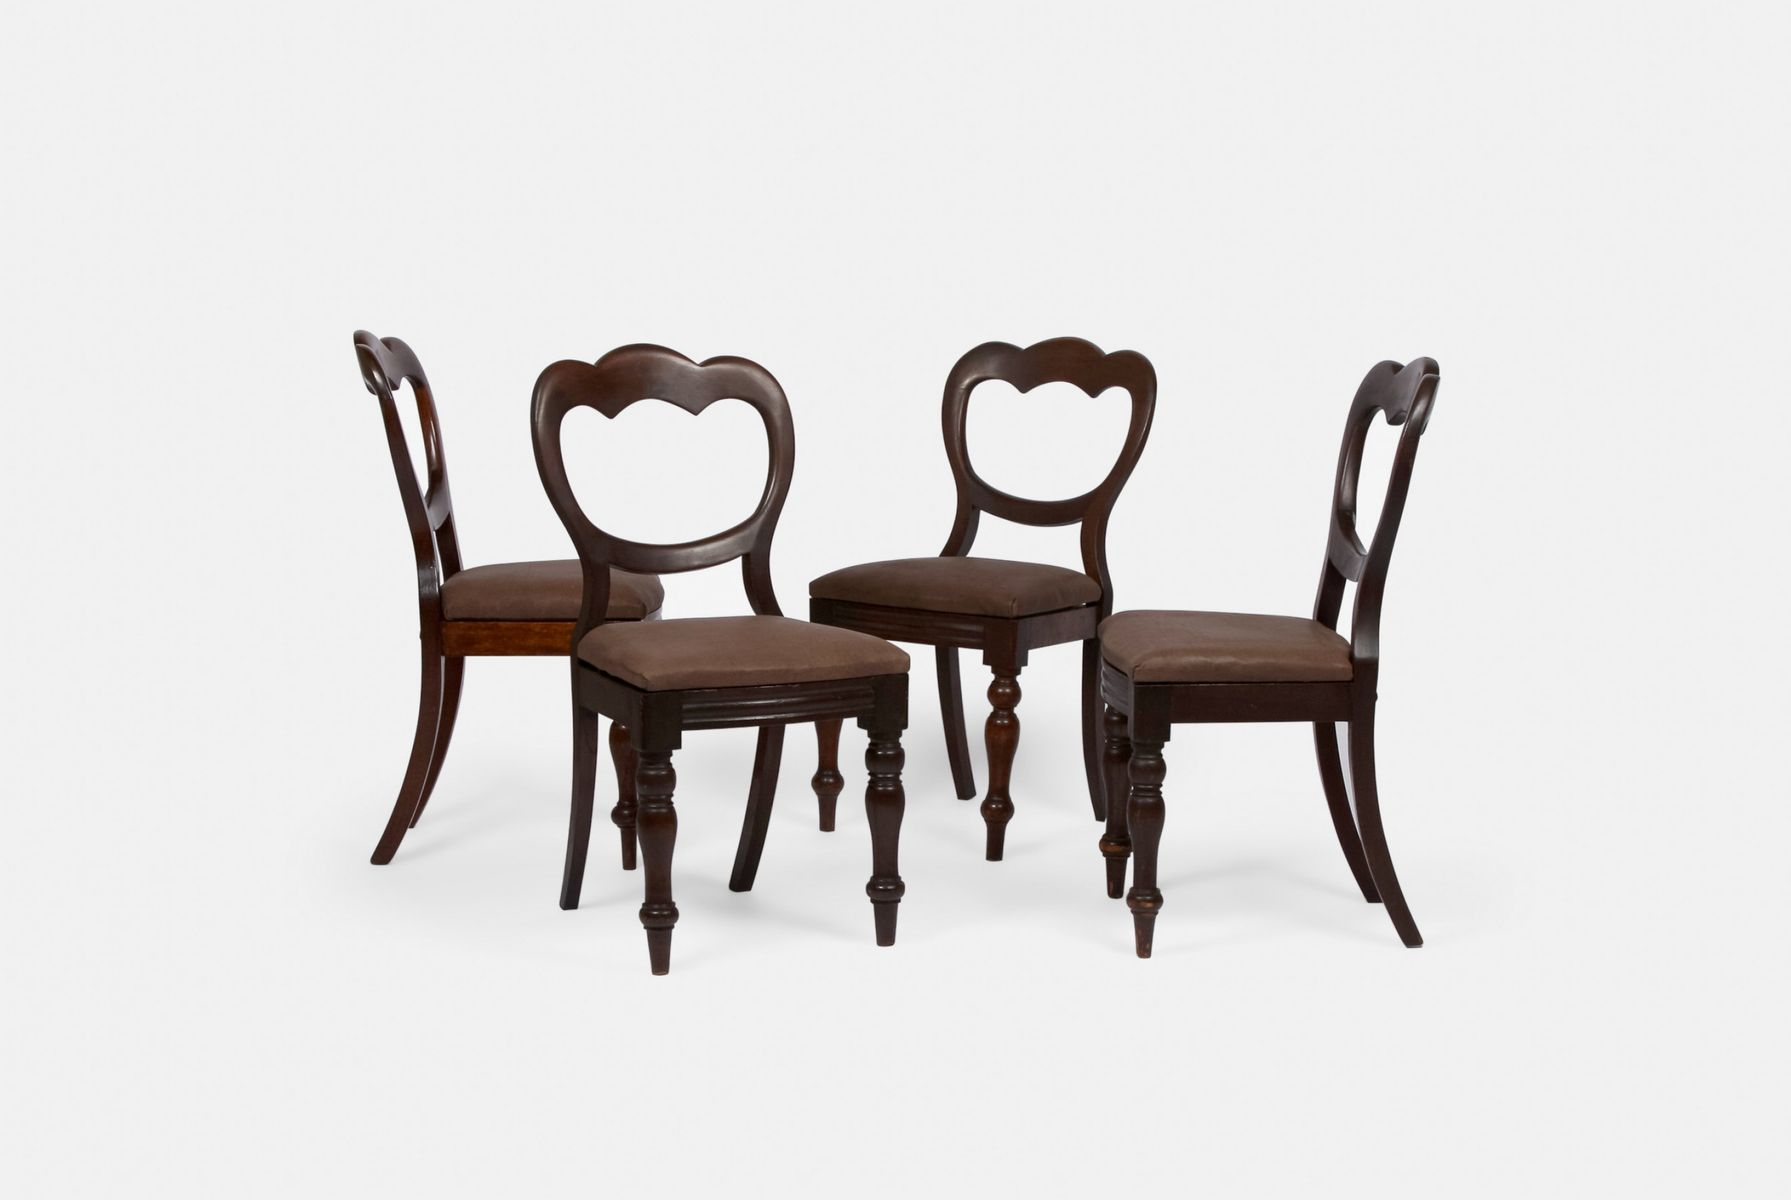 Antique dining chairs with brown leather seats set of 4